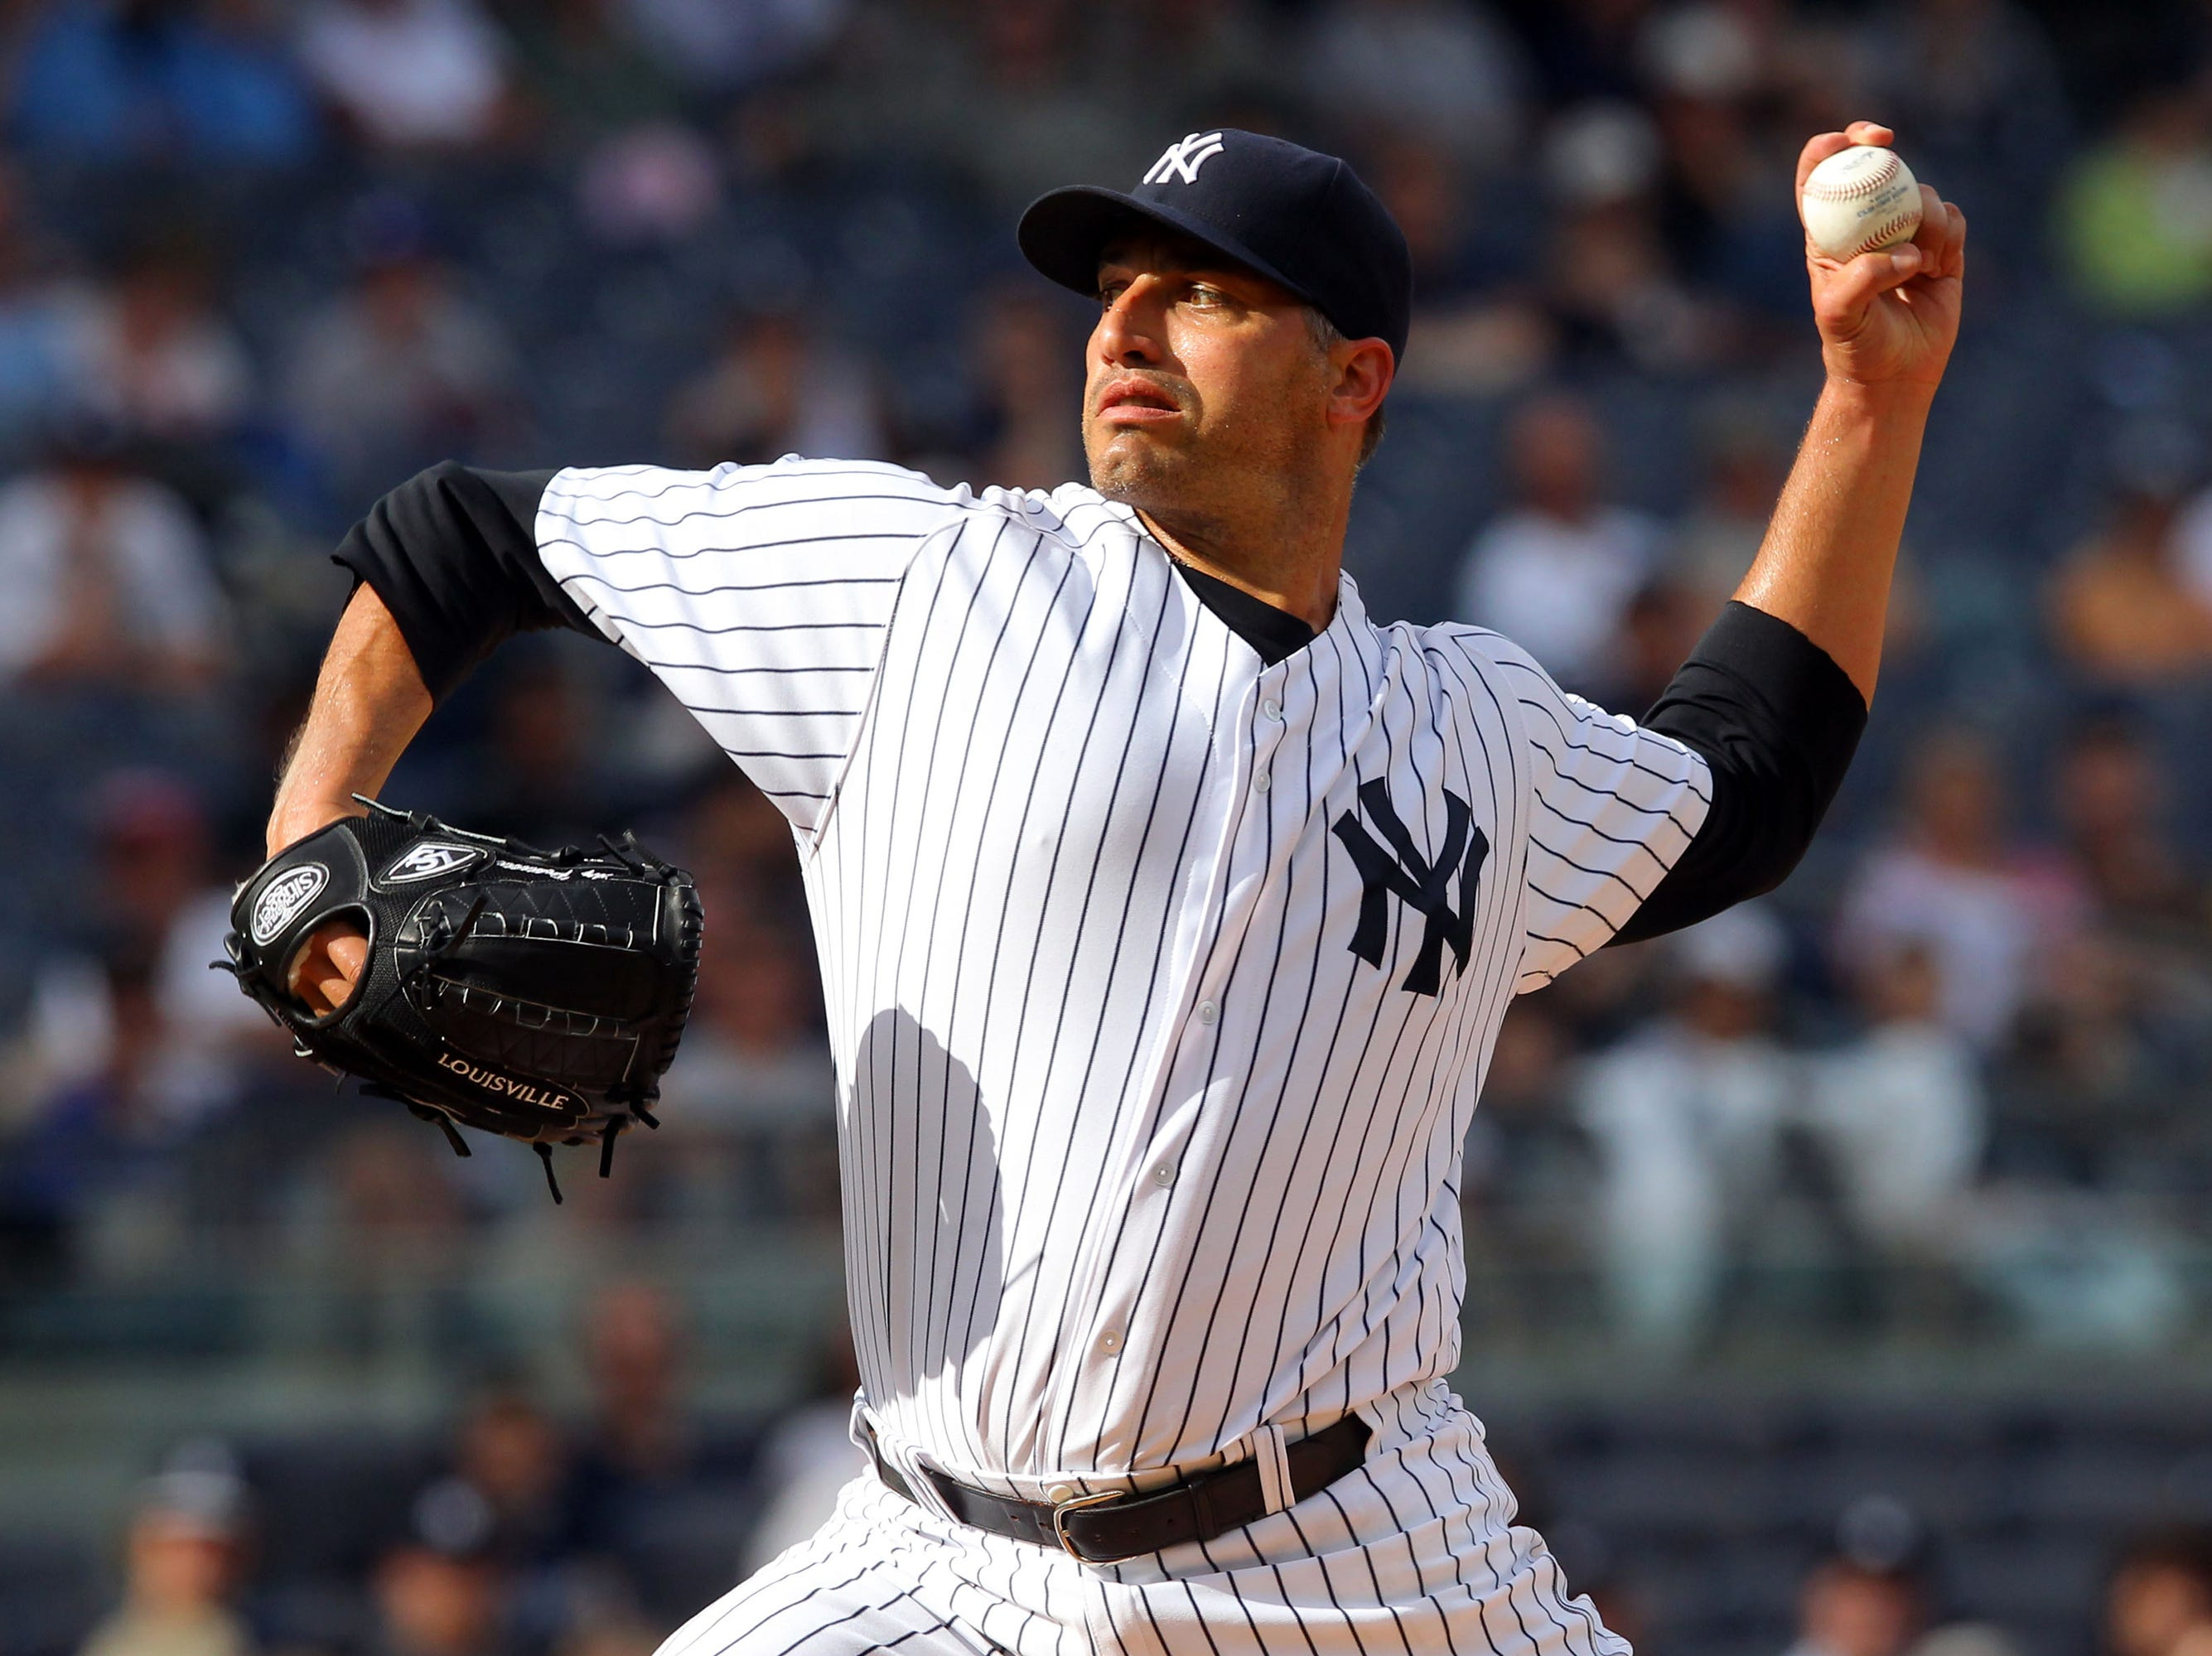 LHP Andy Pettitte (1st year)